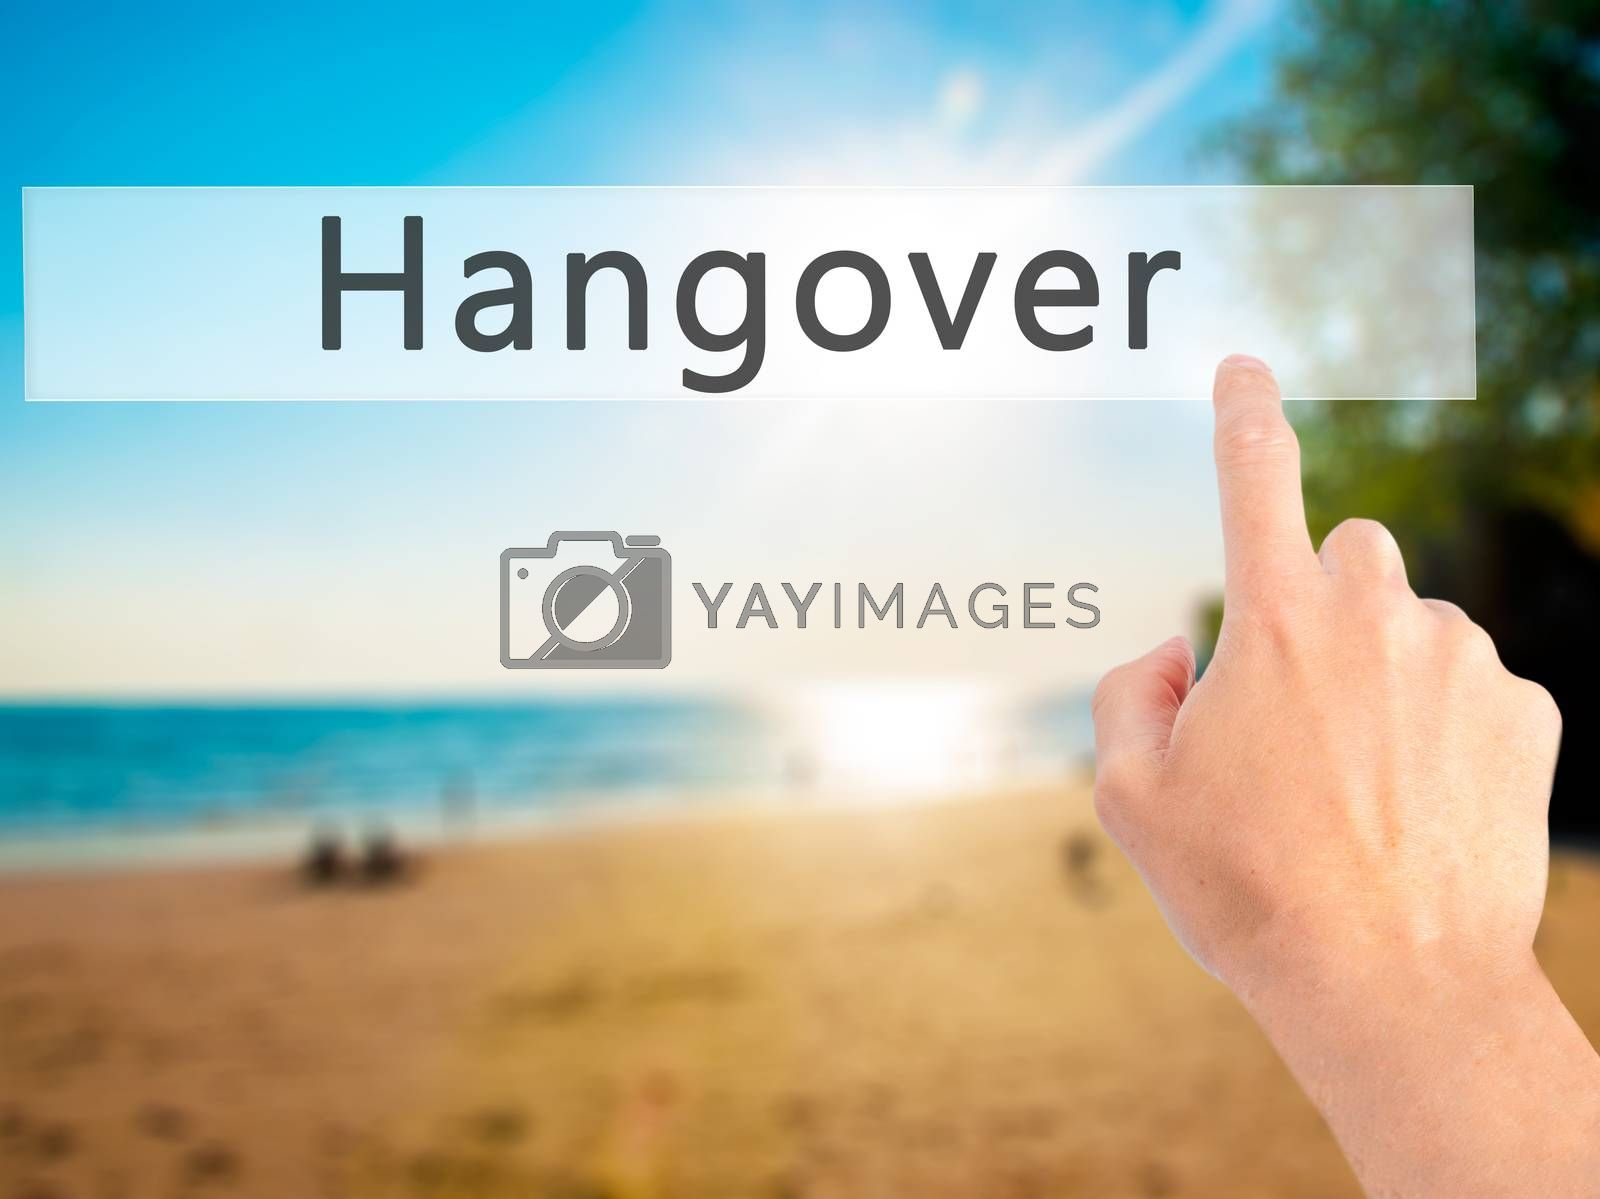 Hangover - Hand pressing a button on blurred background concept  by jackald